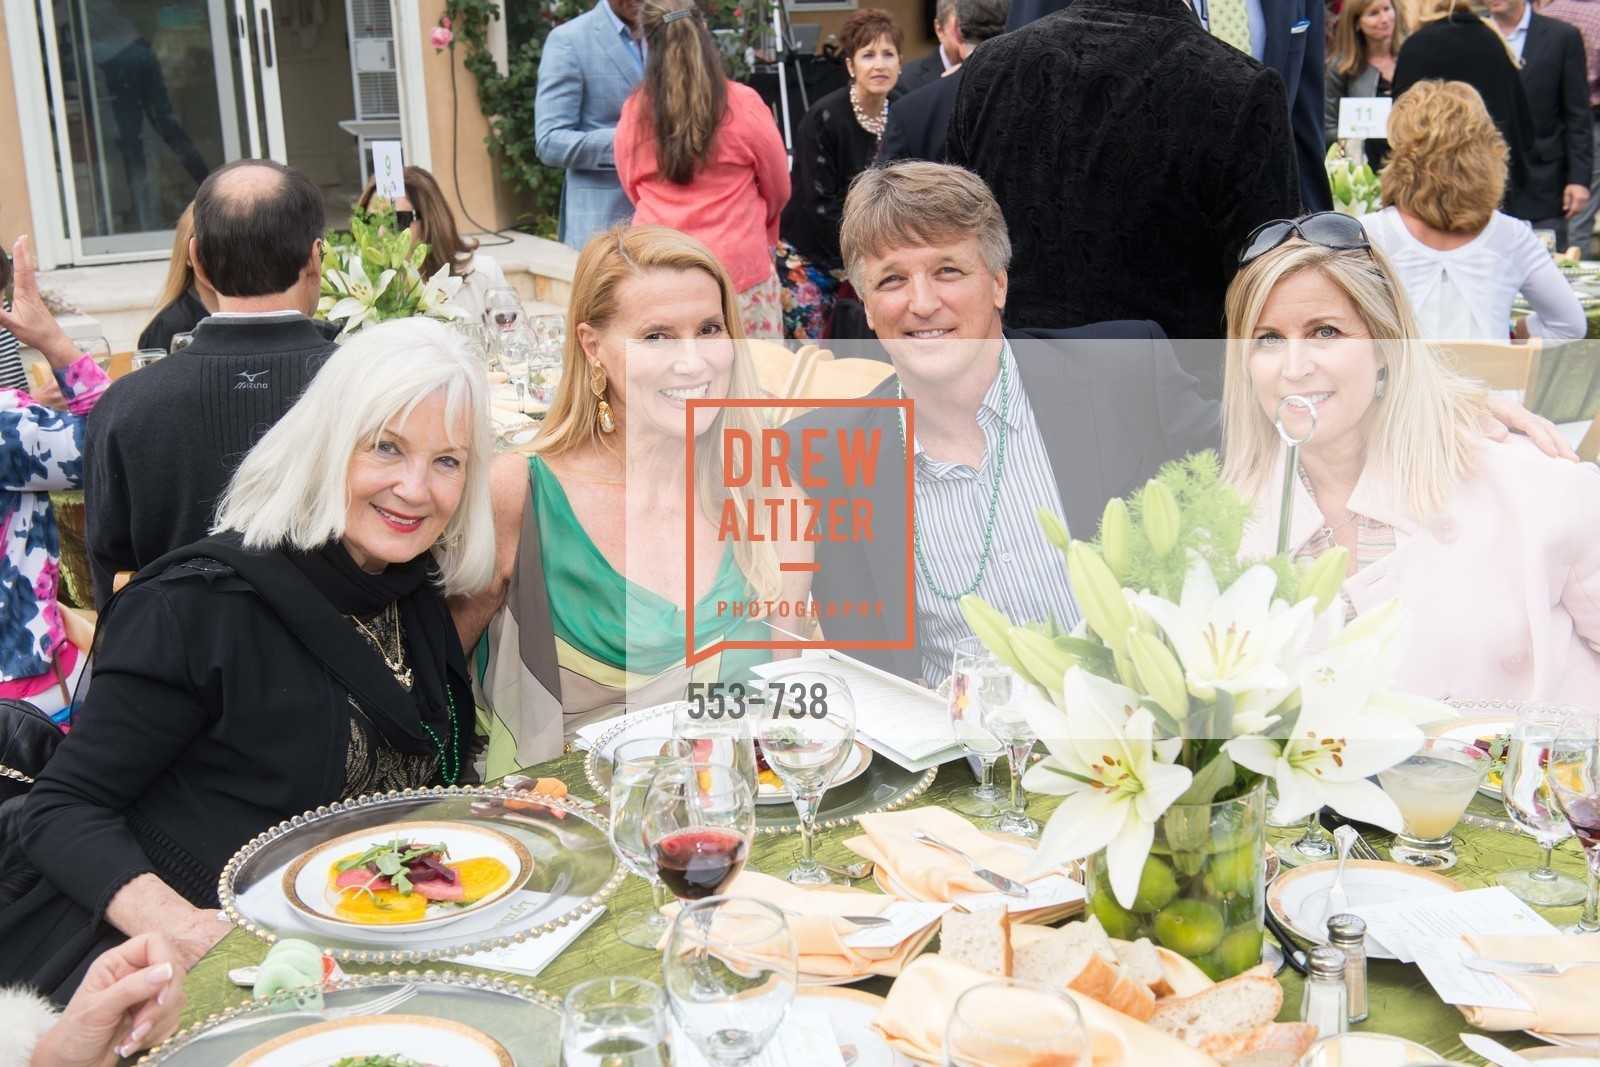 Arlene Inch, Christine DeLimur, Bert Inch, Jane Inch, LymeAid 2015, US, May 17th, 2015,Drew Altizer, Drew Altizer Photography, full-service agency, private events, San Francisco photographer, photographer california